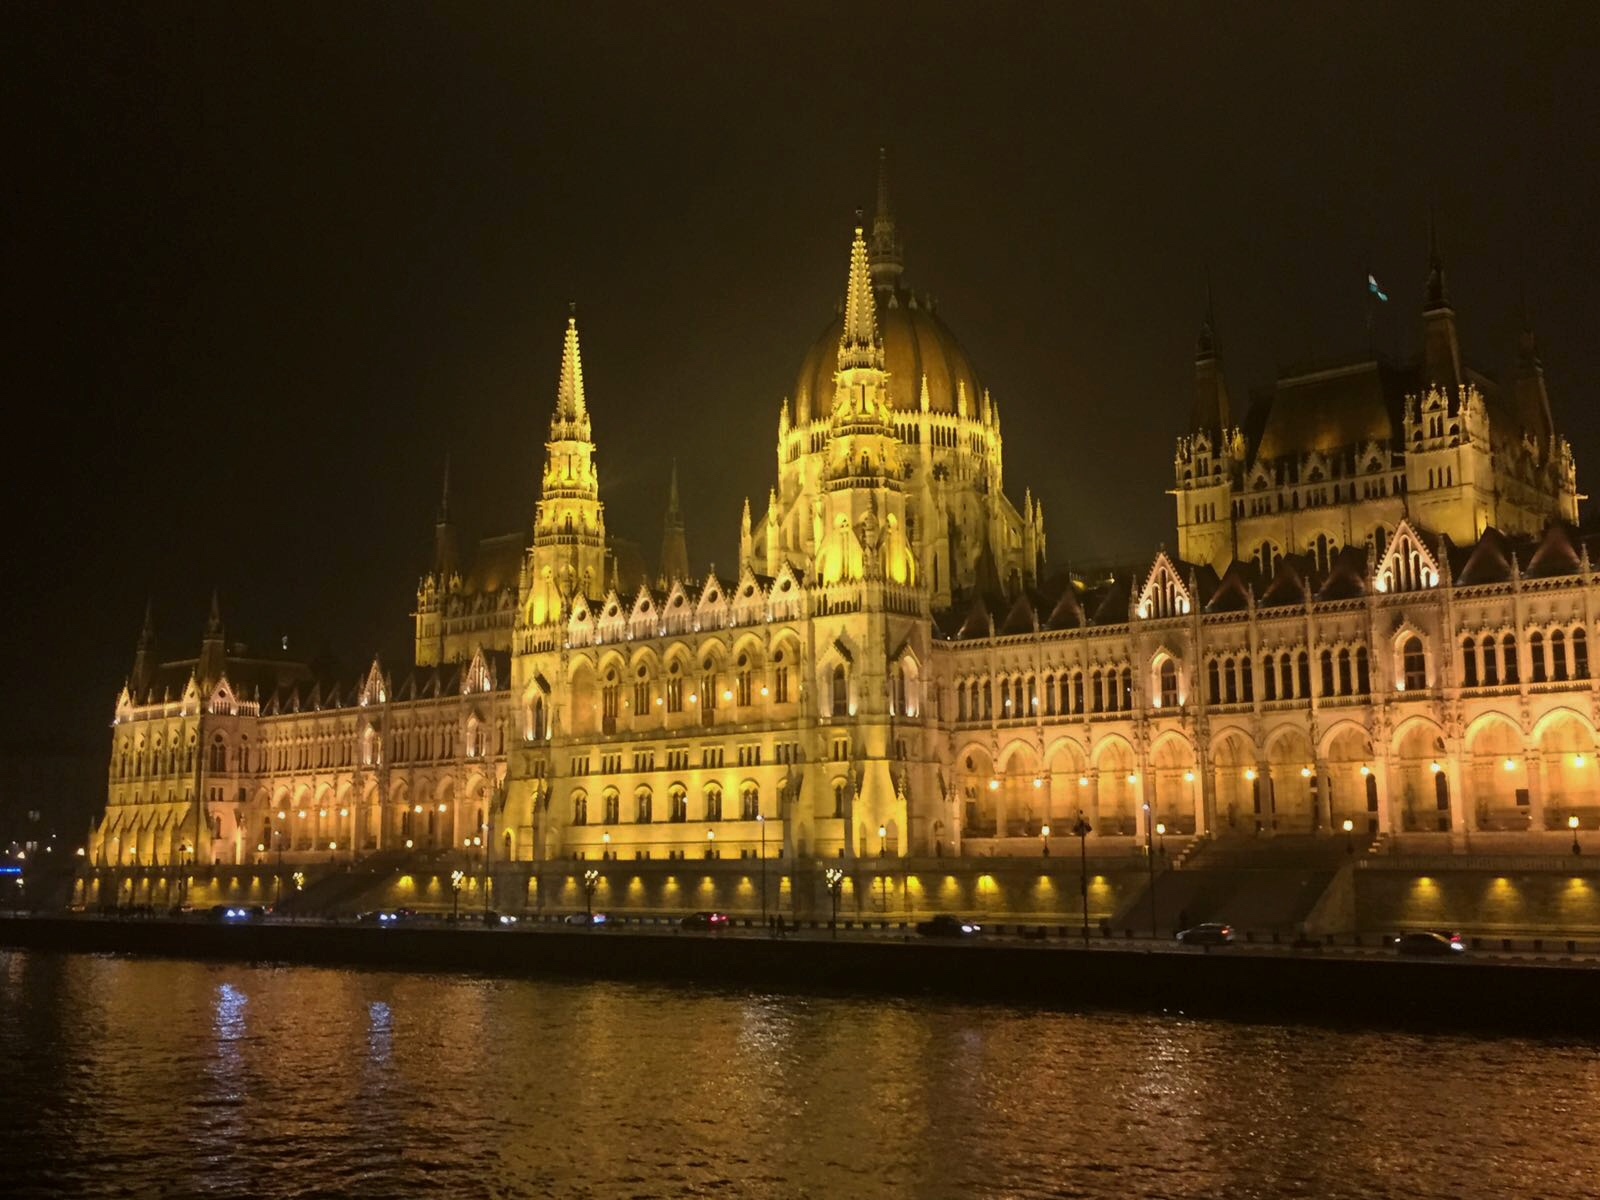 Budapeste: a Paris do leste europeu